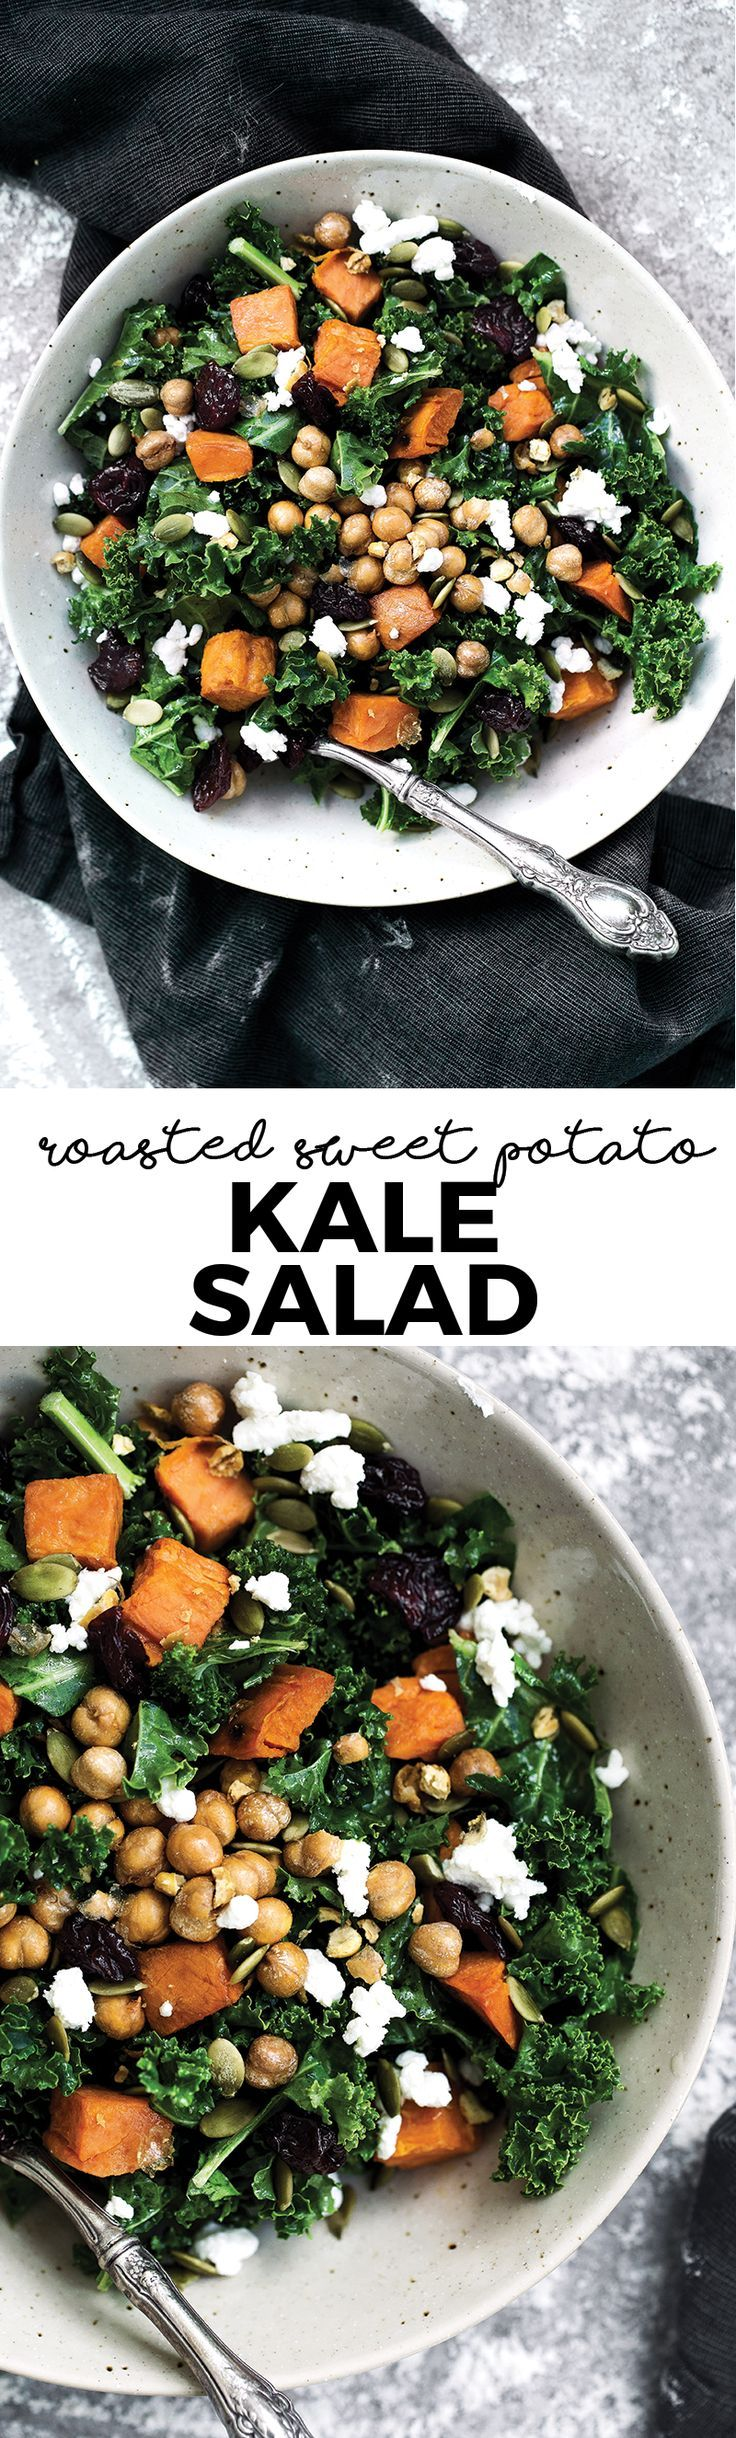 This Roasted Sweet Potato Kale Salad with Dried Cherries, Feta & Pepitas is everything you've ever wanted in a winter salad!